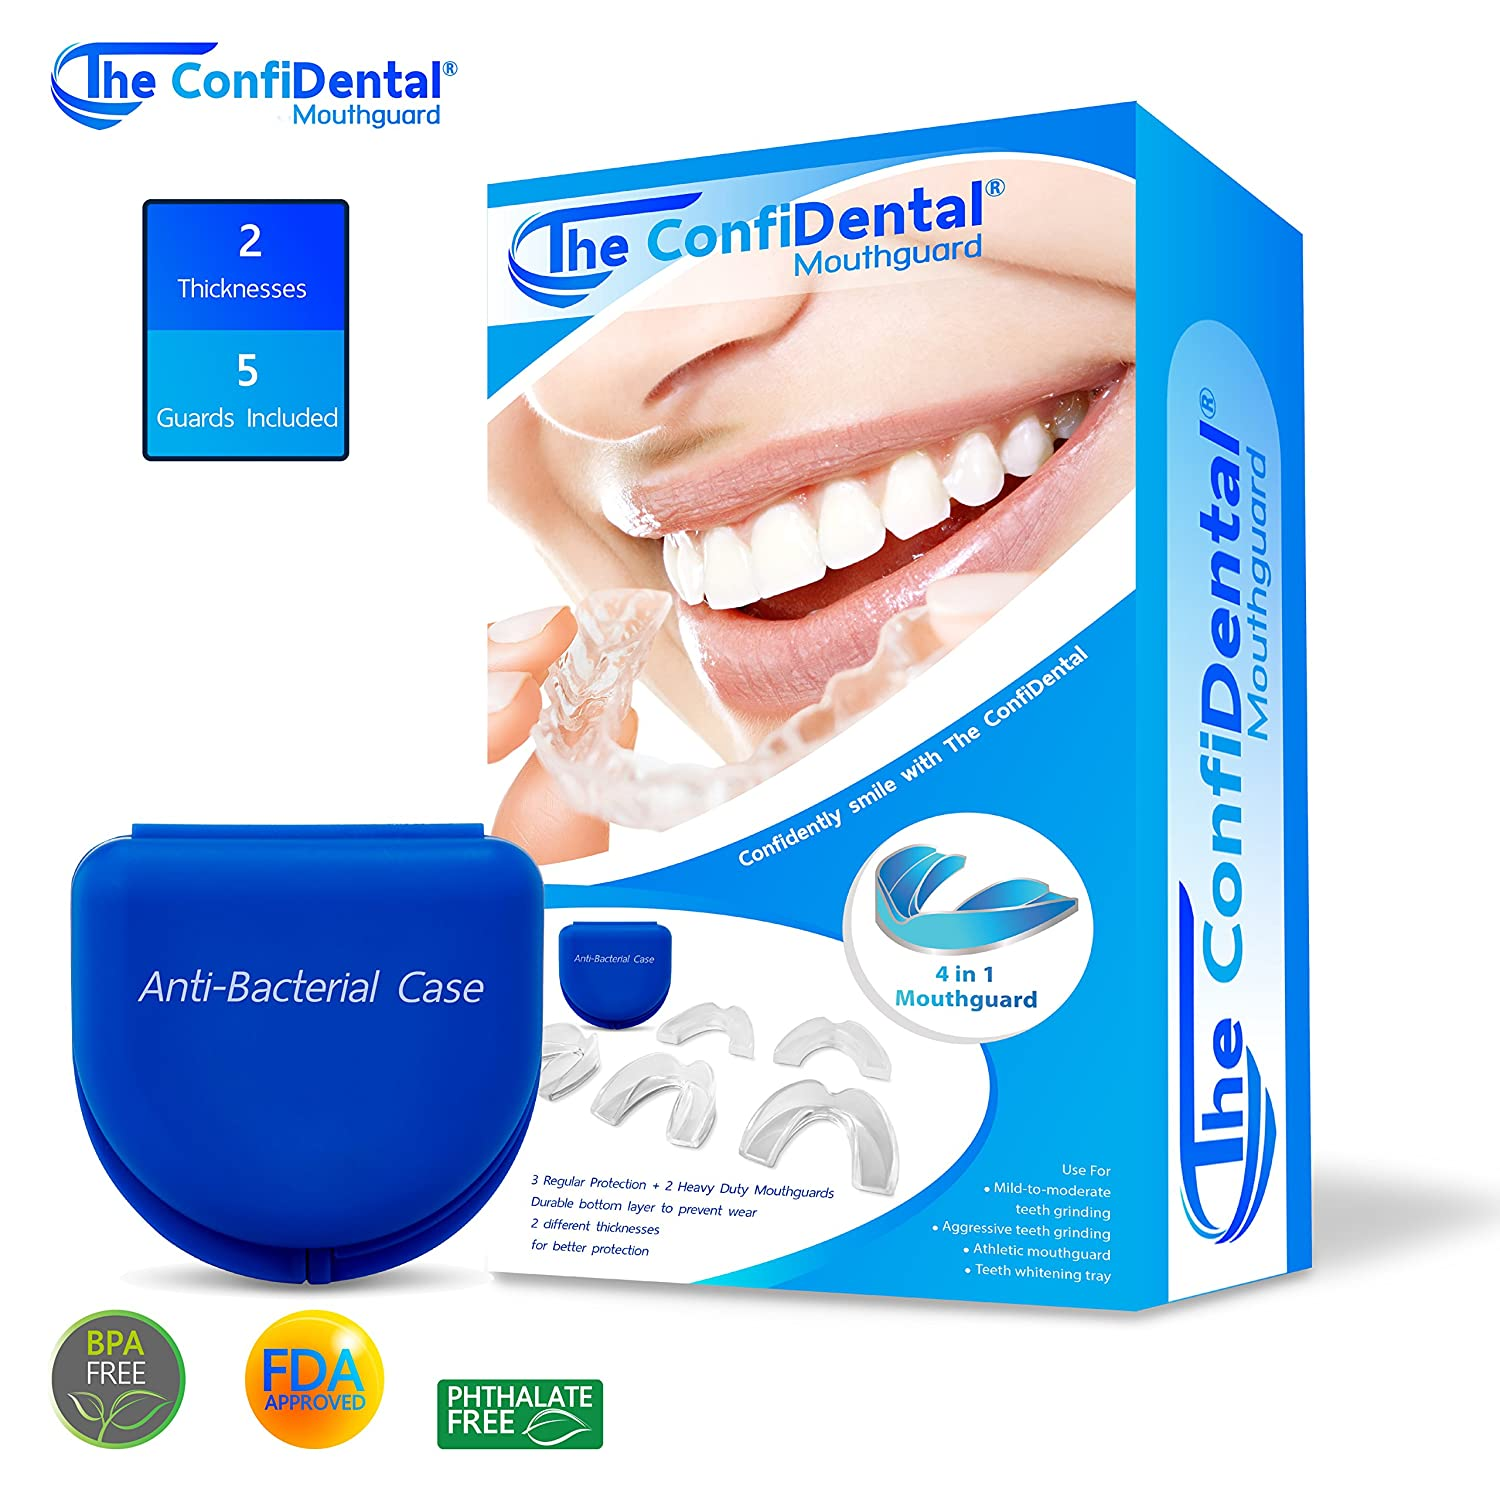 The ConfiDental - Moldable Mouth Guard for Teeth Grinding Clenching Bruxism Sport Athletic Whitening Tray Pack of 5 Including 3 Regular and 2 Heavy Duty Guard (3 (Ill) Regular 2 (ll) Heavy Duty)